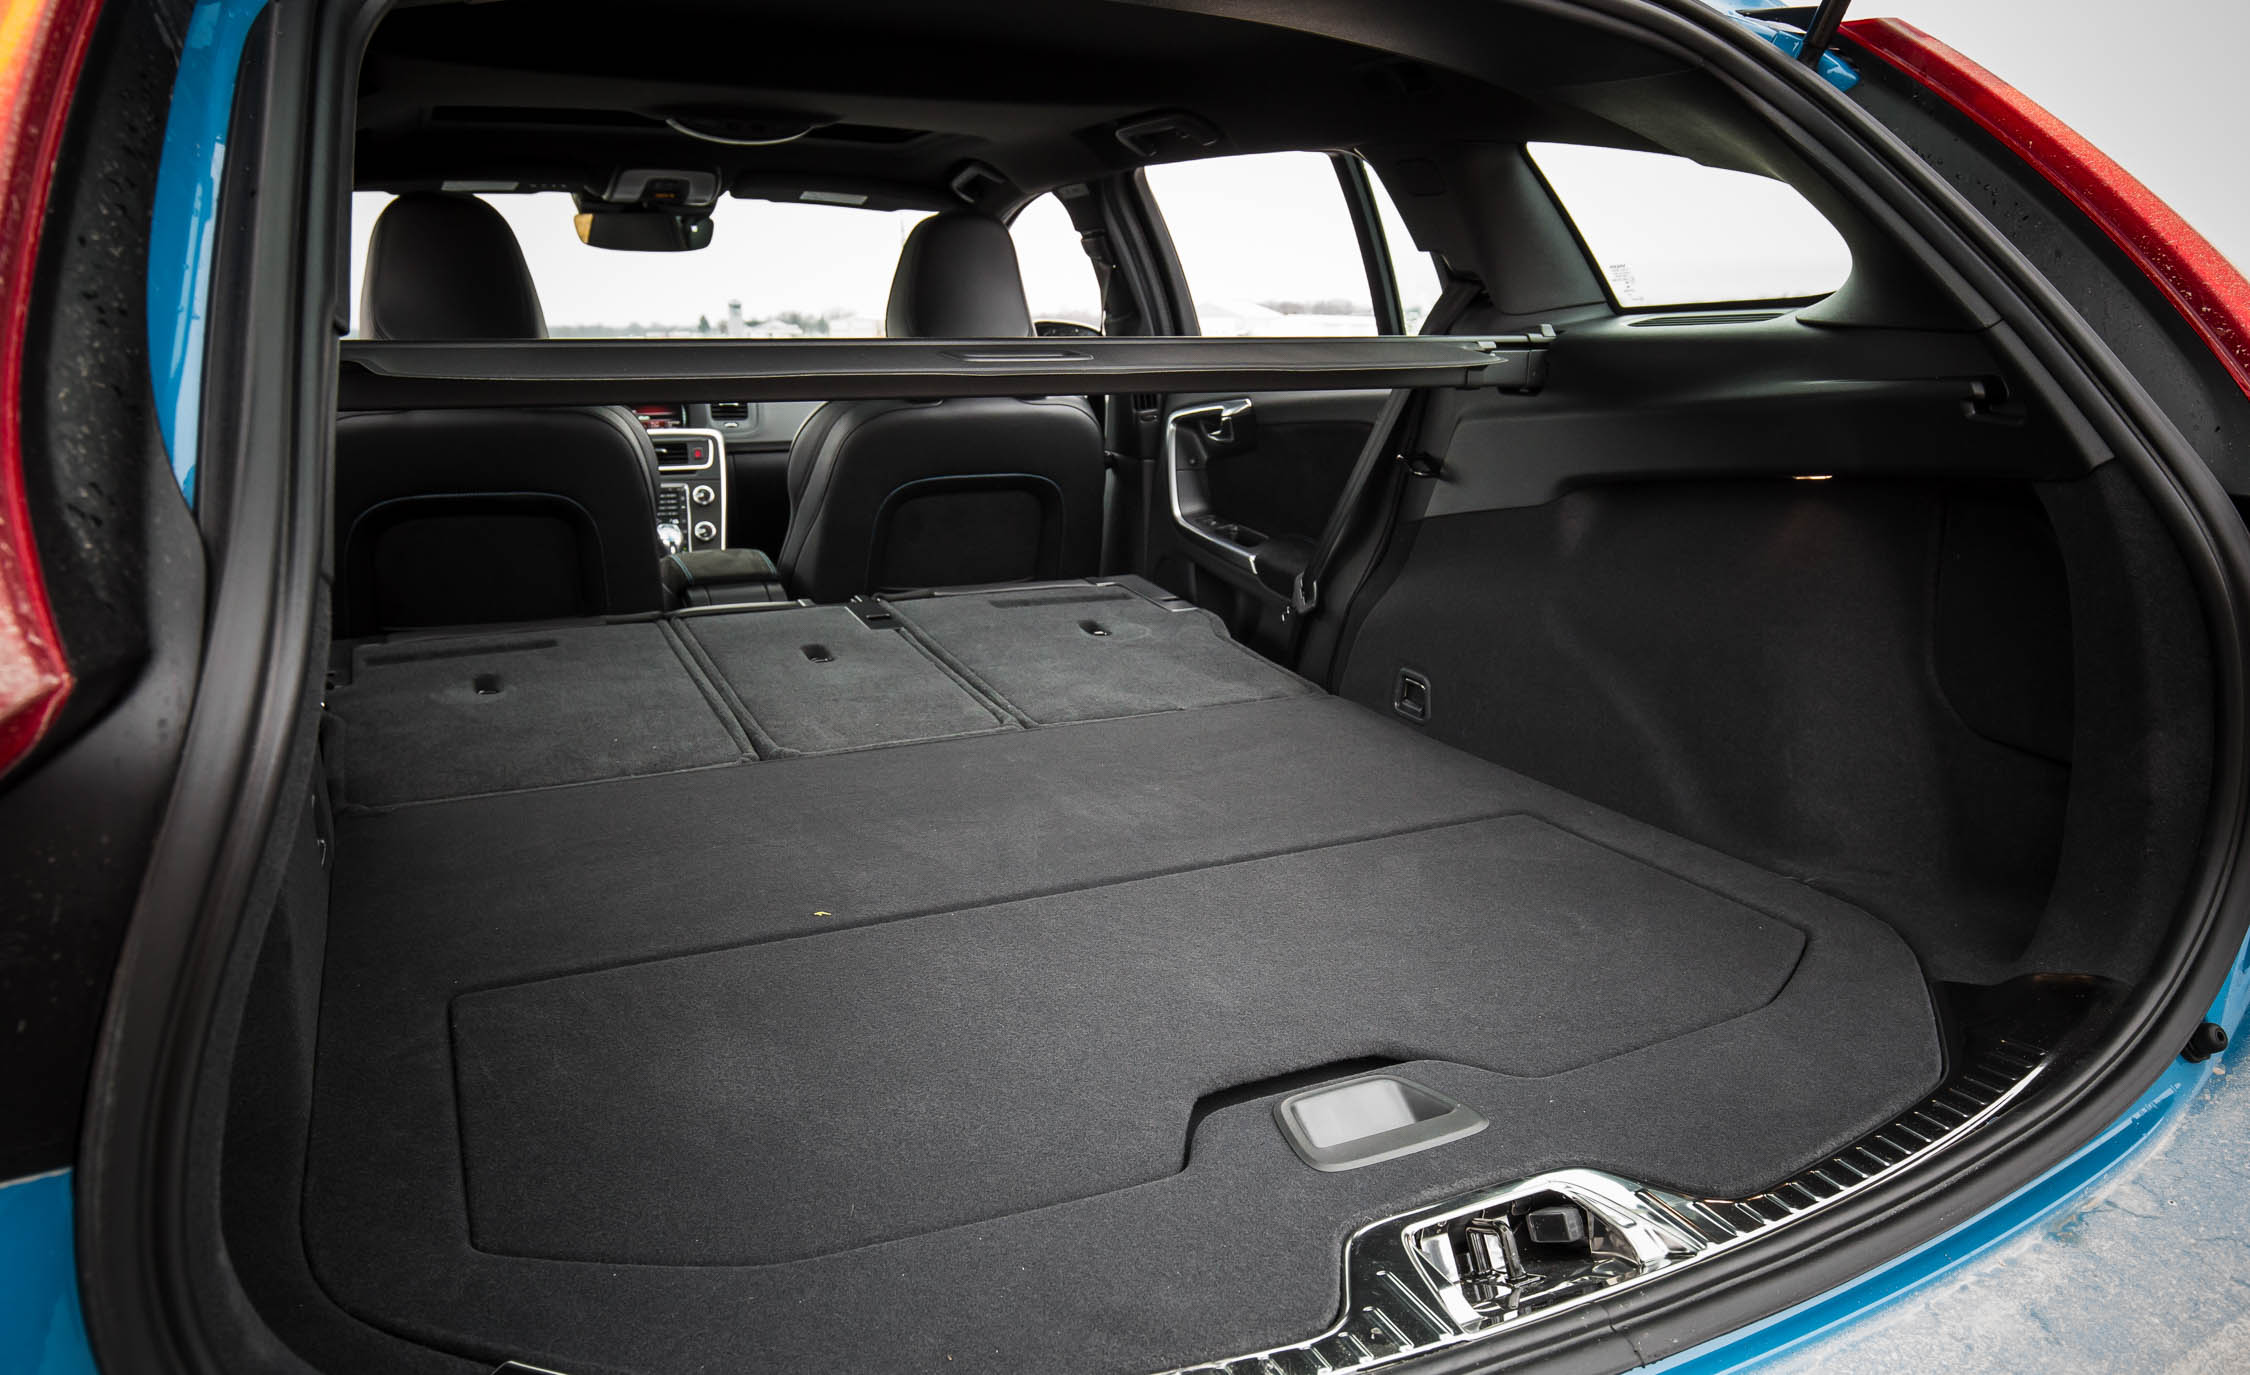 2017 Volvo V60 Polestar Interior View Cargo Seats Folded (View 28 of 53)